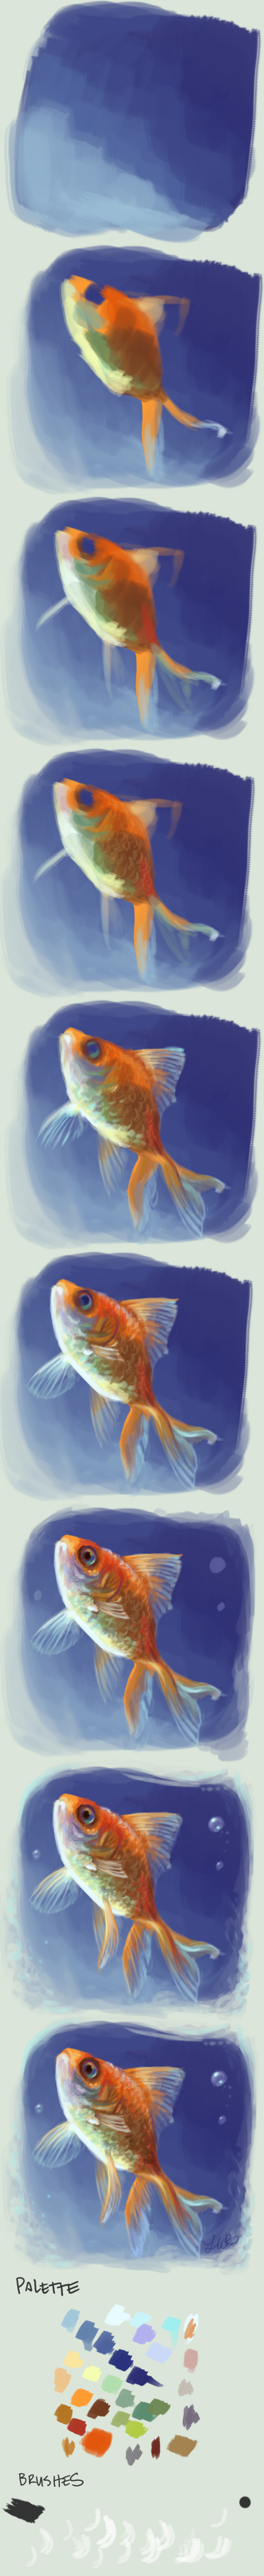 Daily Doodle Demo: Fishy